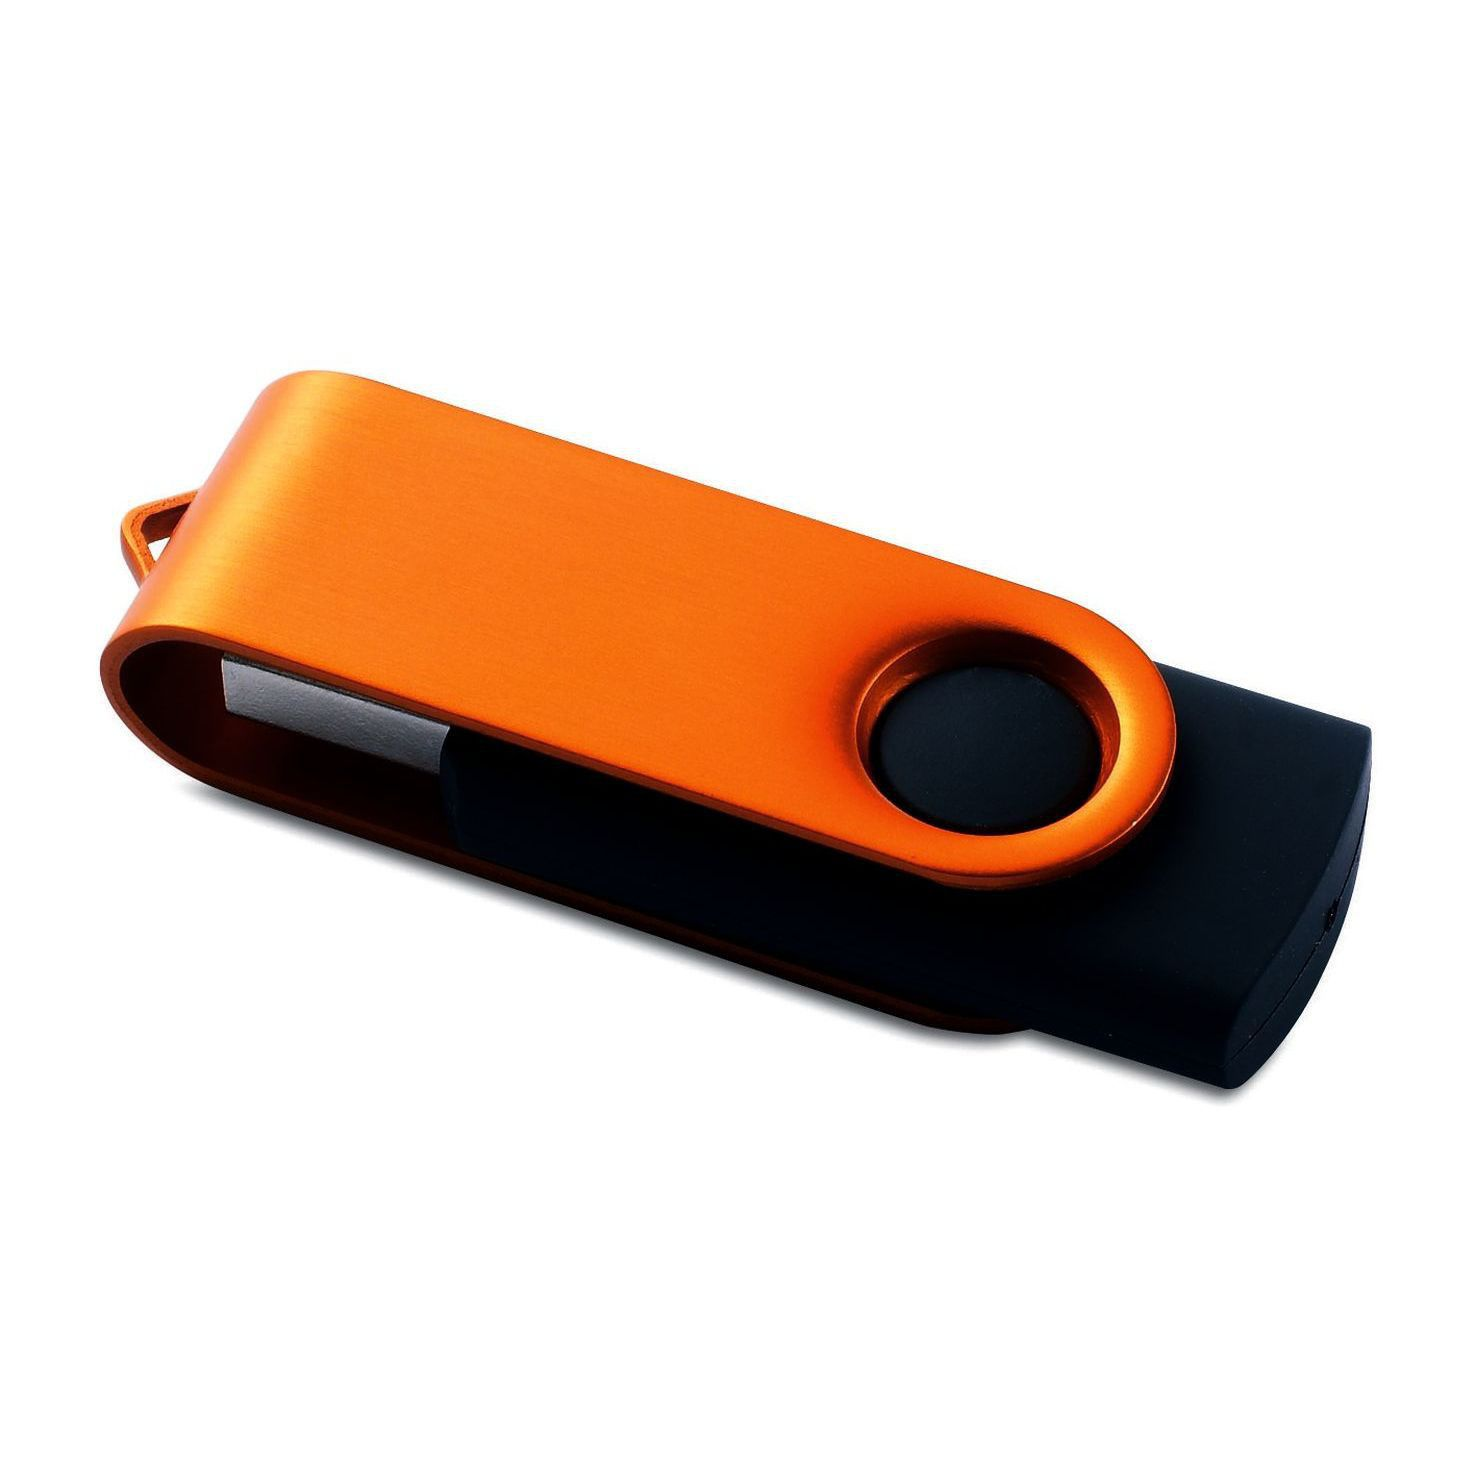 Oranje Twister USB stick 32GB